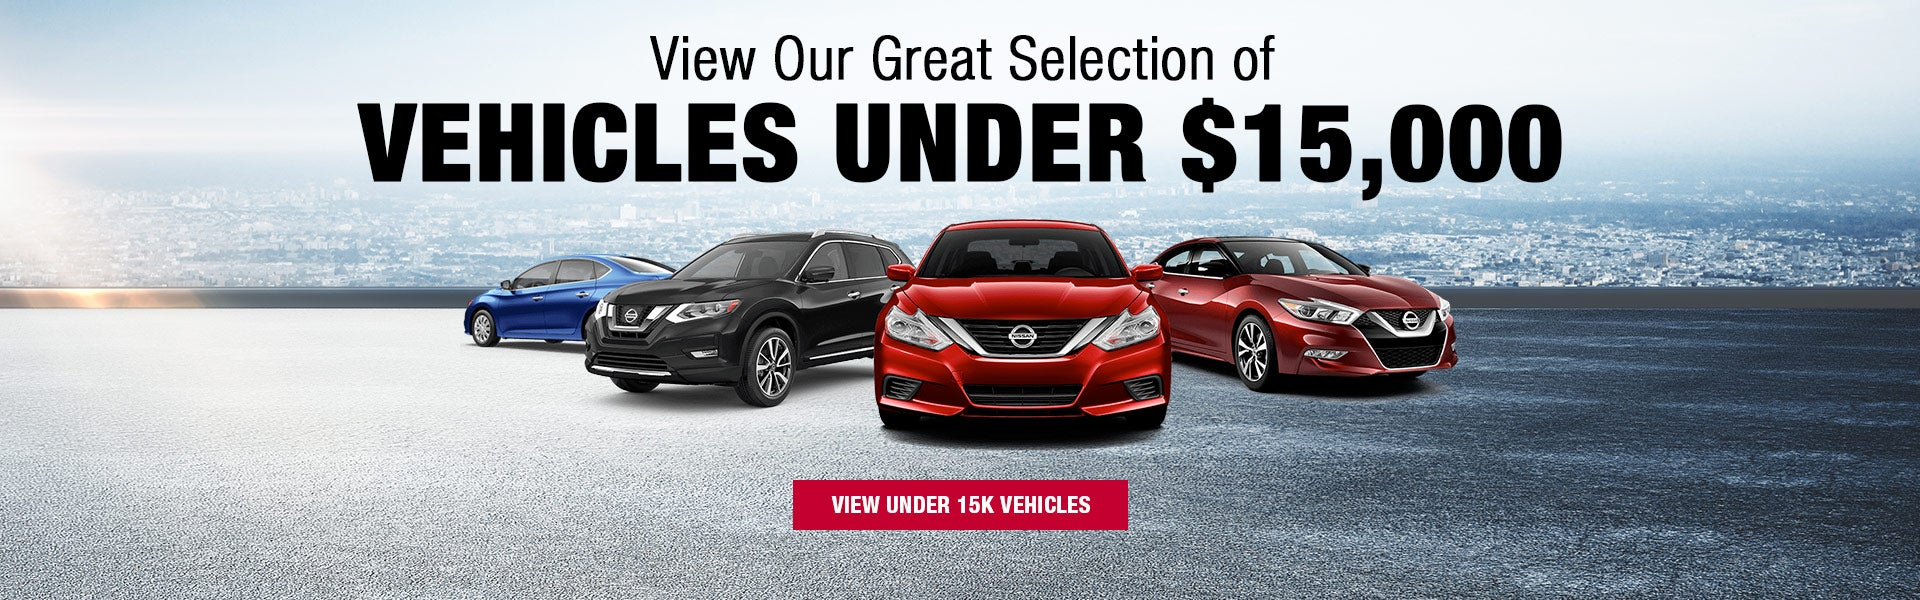 First Nissan of Simi Valley | Nissan Dealership in Simi